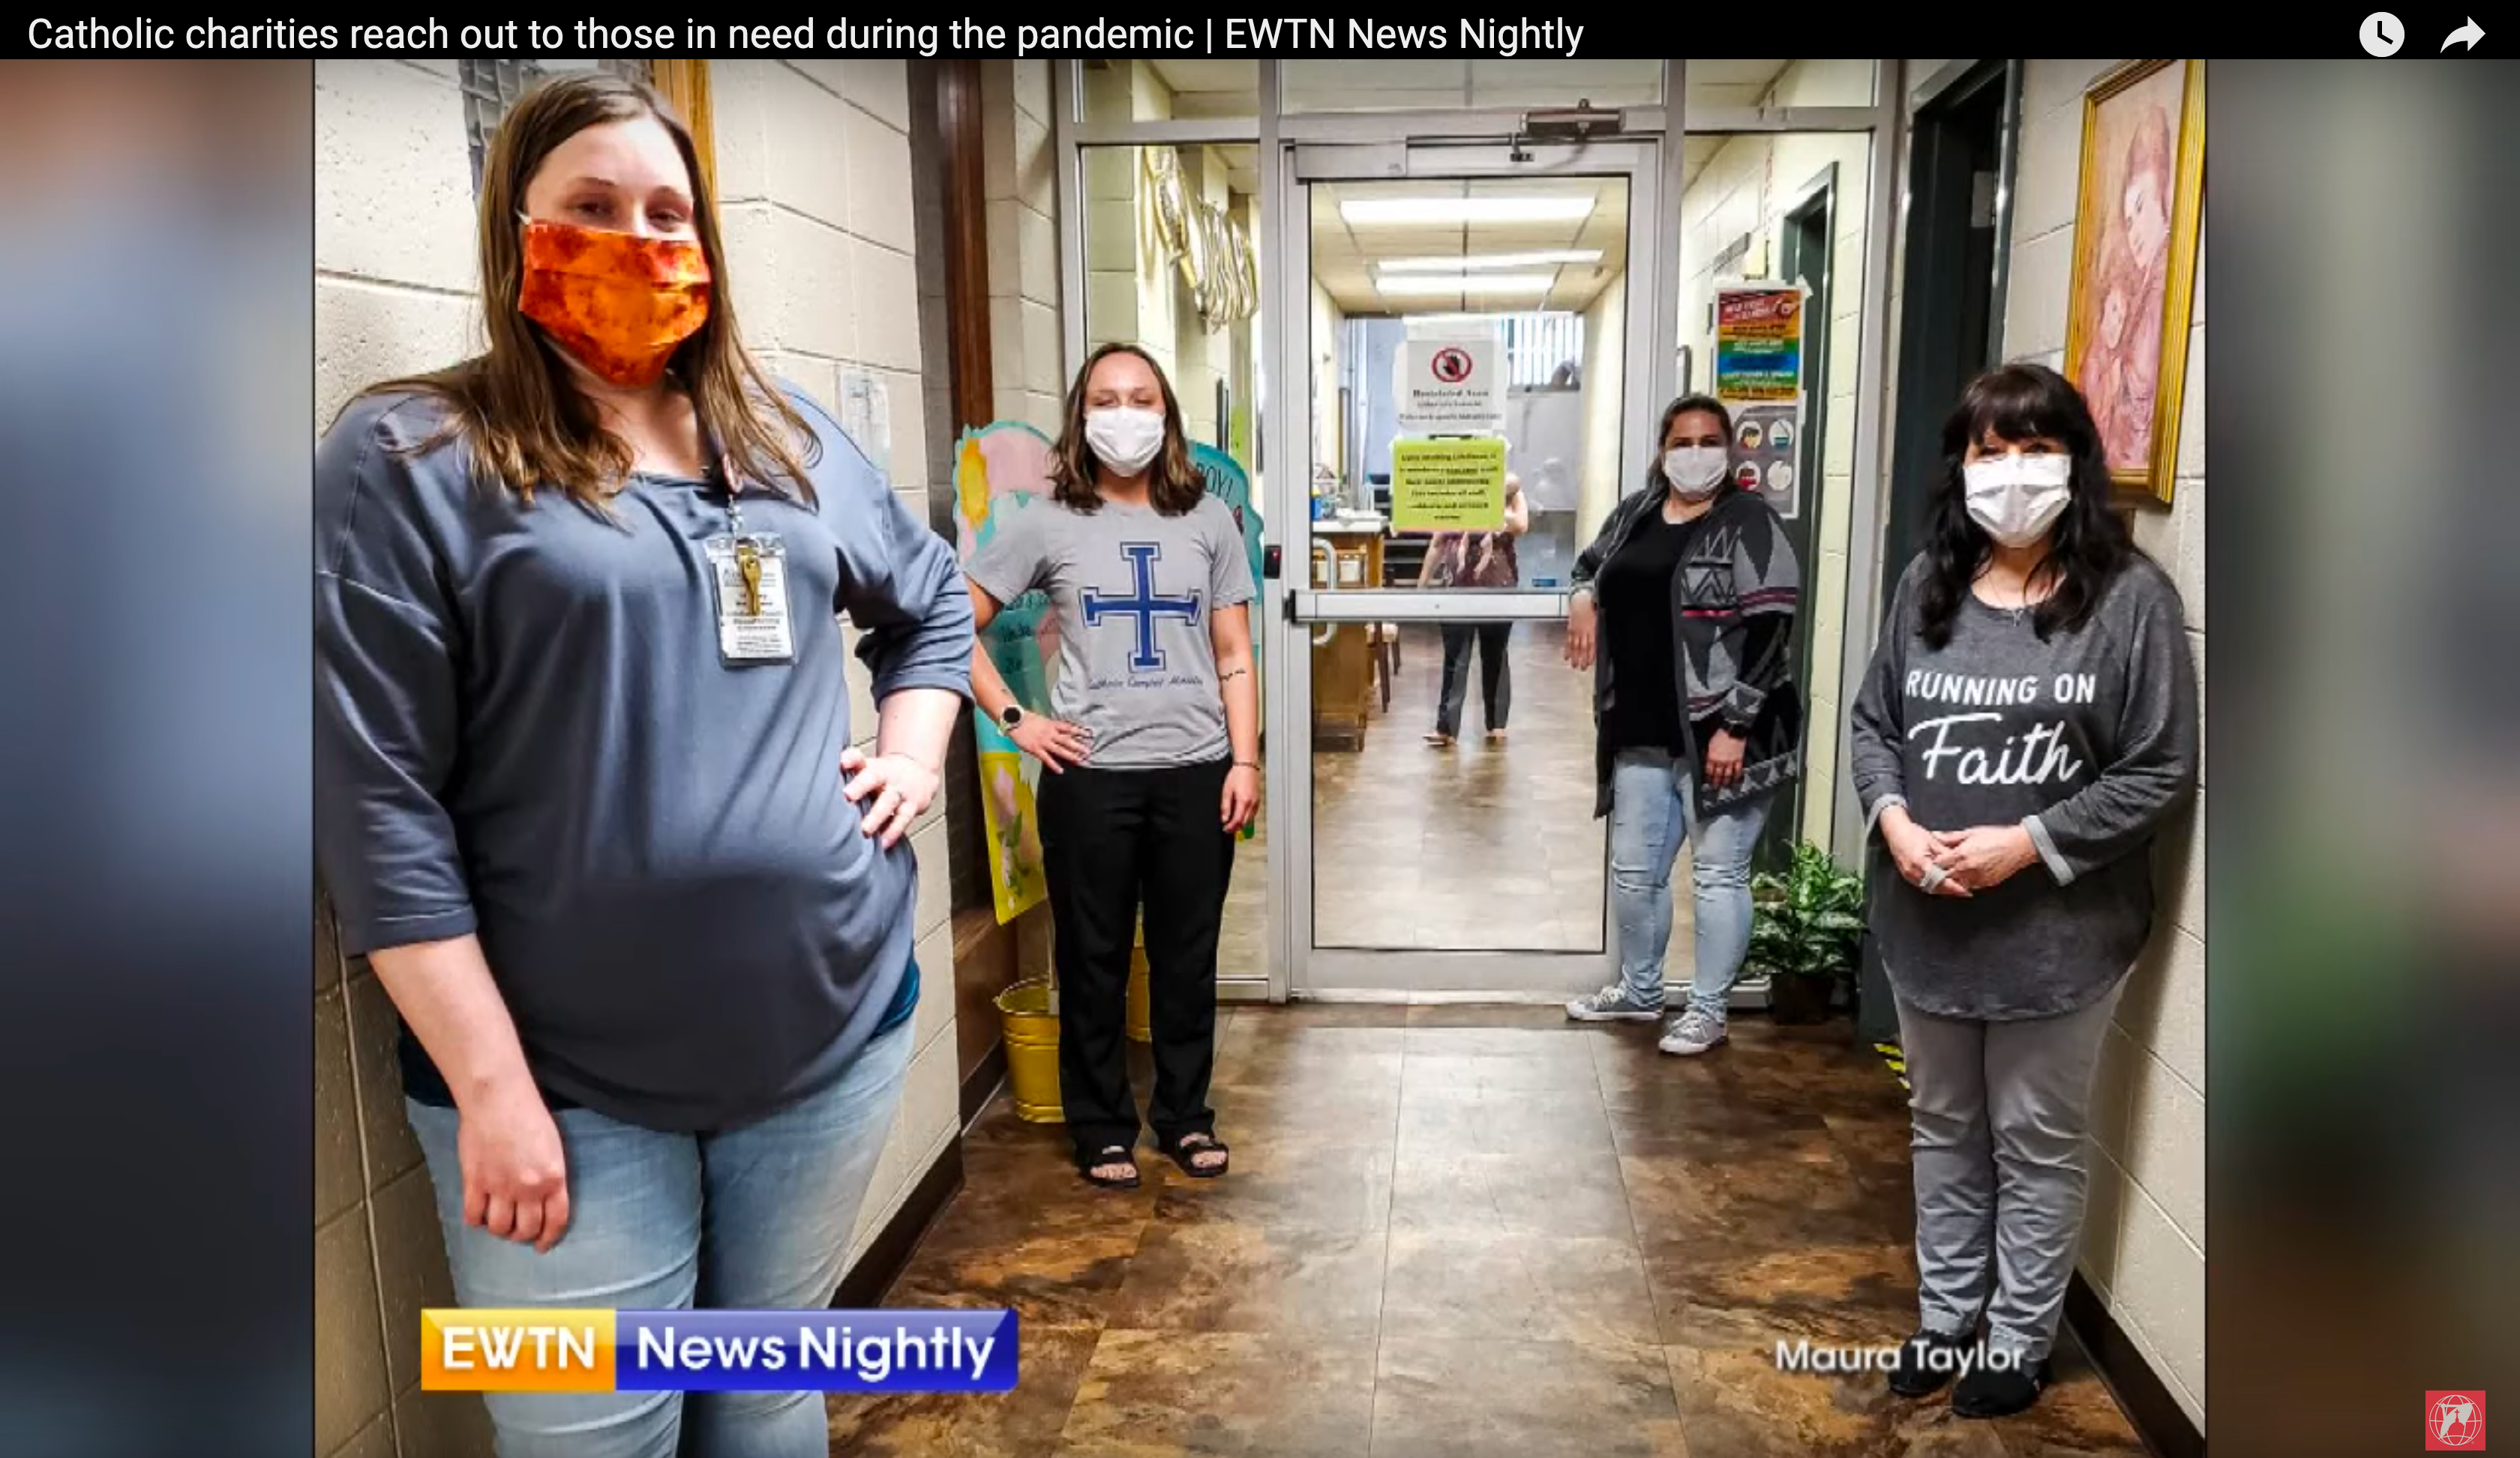 EWTN features CCSOMO's LifeHouse in national story about Catholic Charities agency's COVID-19 response